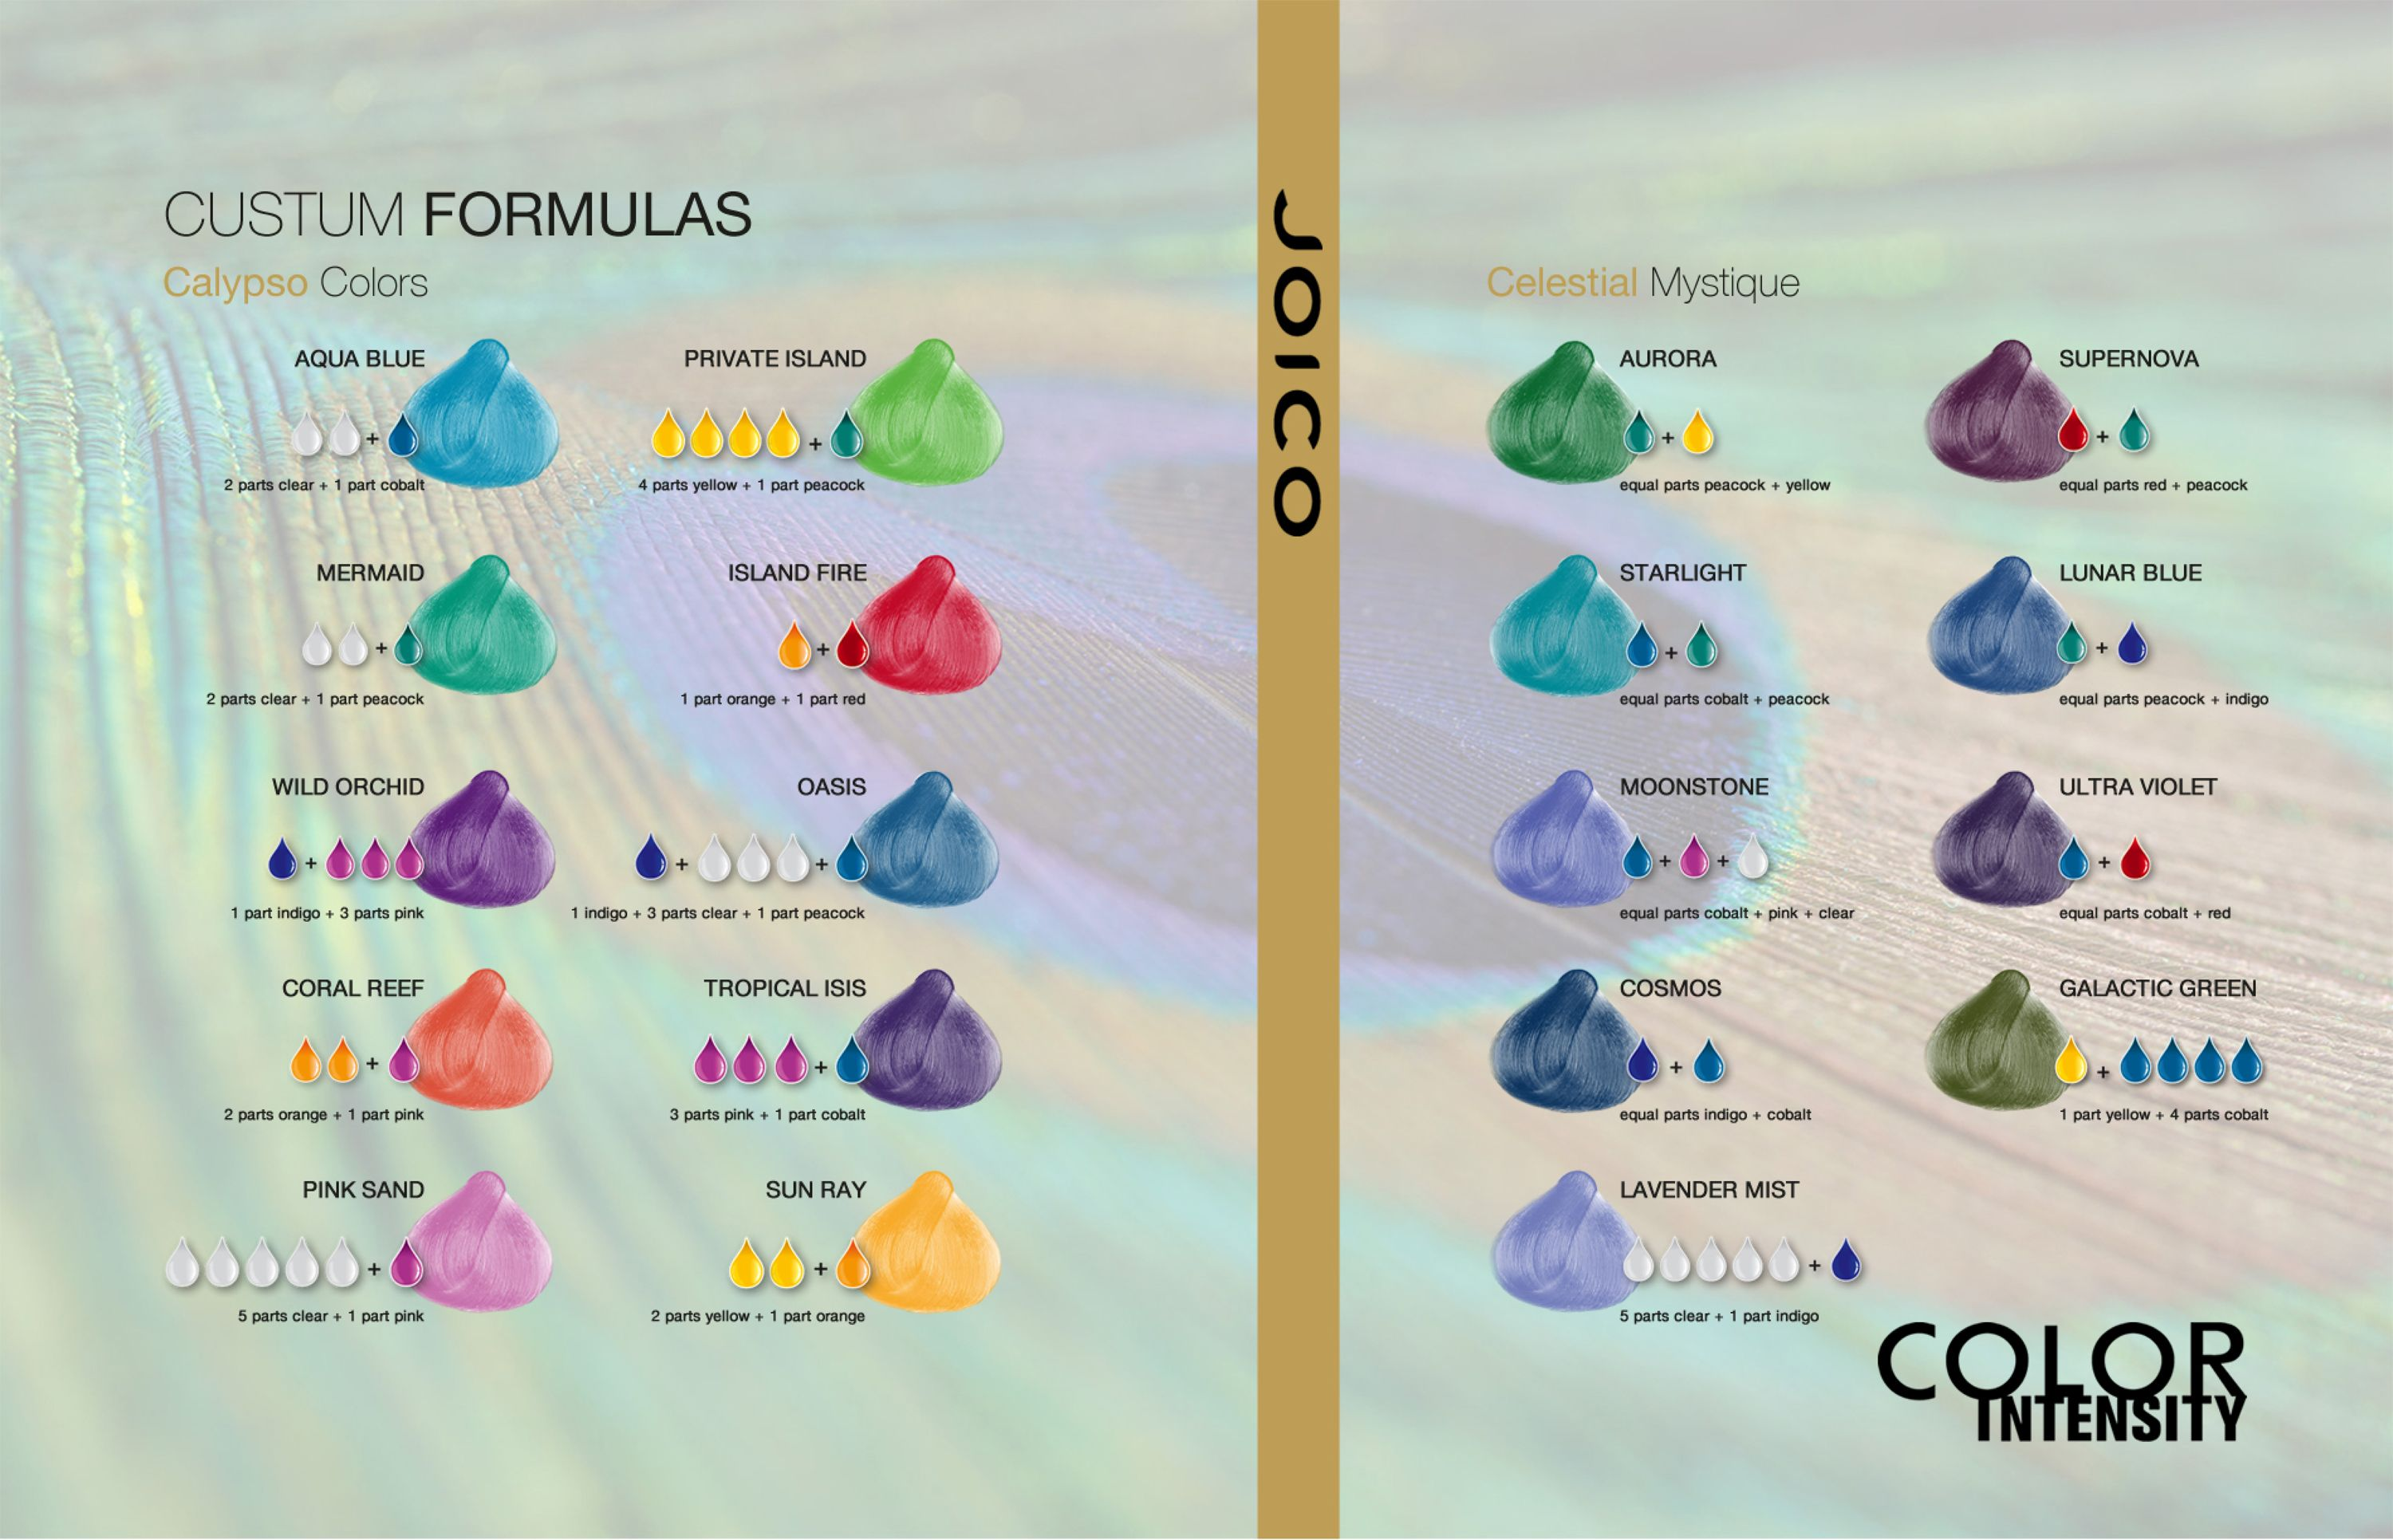 Joico Vero K Pak Color Intensity Calypso Colors Celestial Mystique Shade Chart Hair Dye Colors Joico Color Hair Color